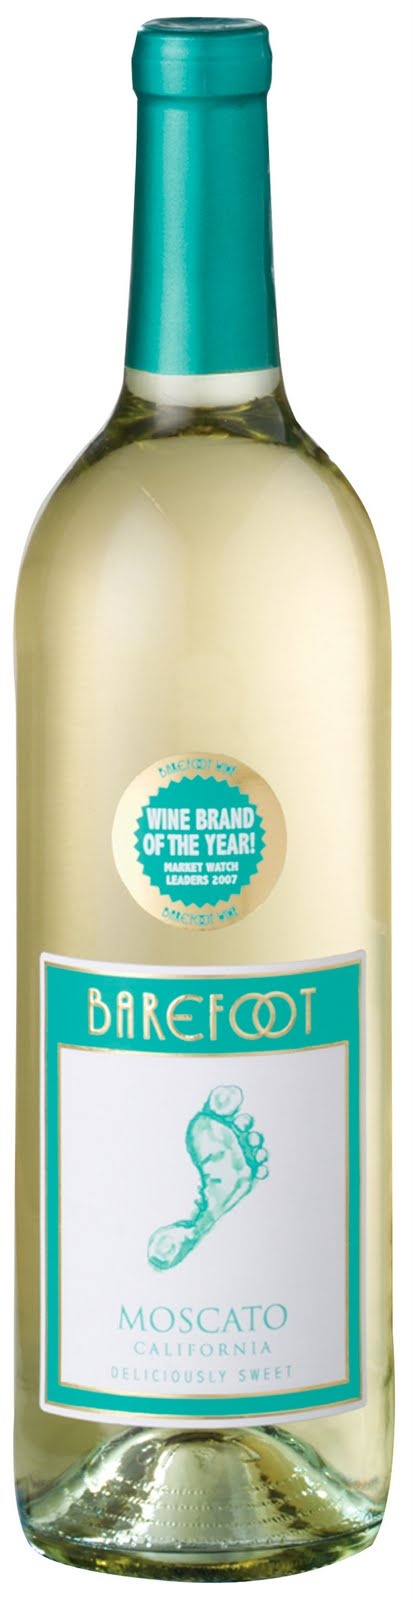 Barefoot Moscato wine -- the Writer's Little Helper